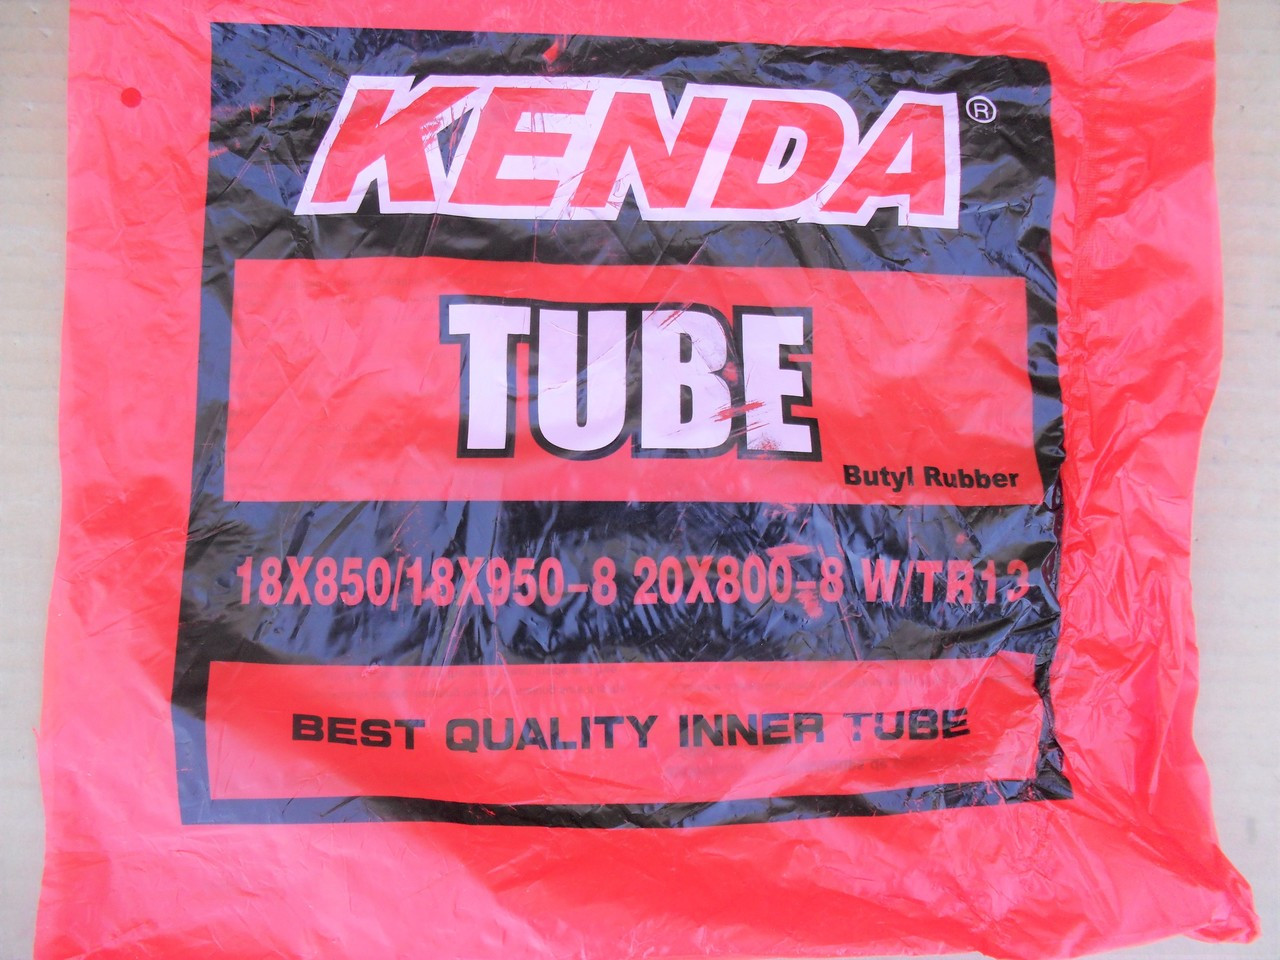 Lawn Mower Tire Tube 18x6.50-8, 18x8.50-8, 18x9.50-8, 20x10.00-8 for Craftsman 7152J, 320410, 003165, Carlisle, Lesco